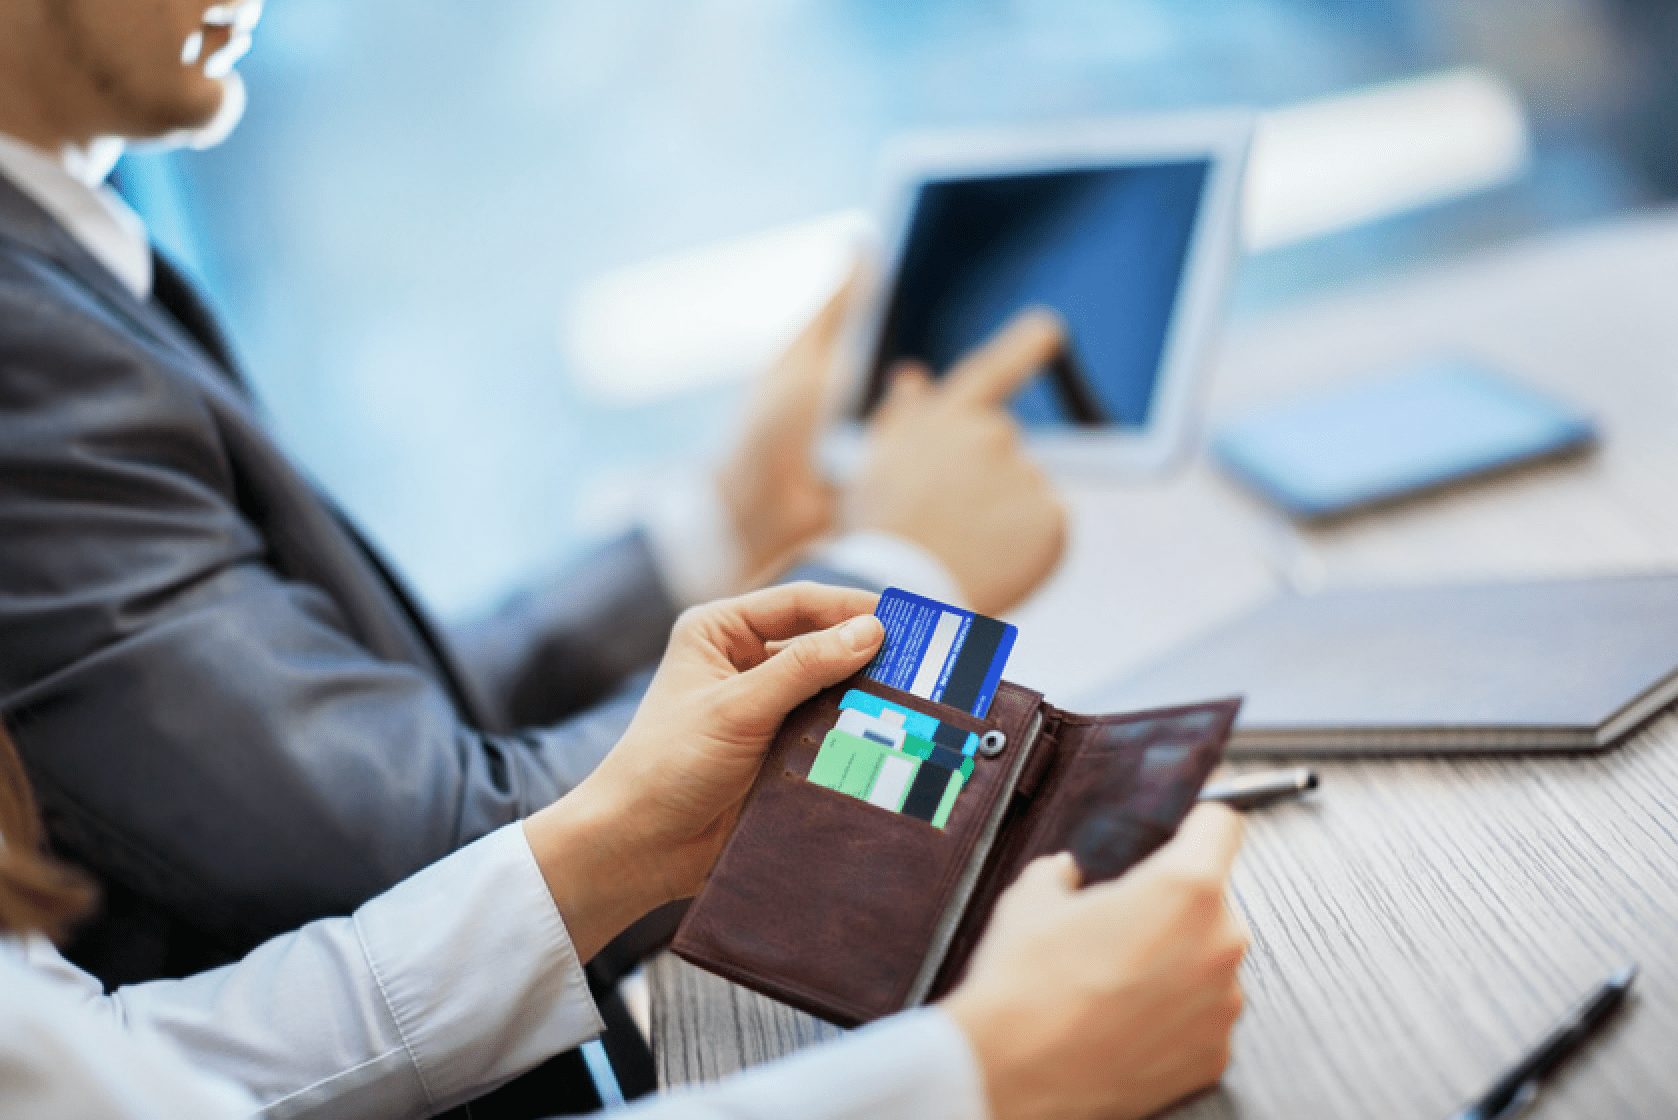 What Are the Benefits of an Online Merchant Account for Your Small Business?